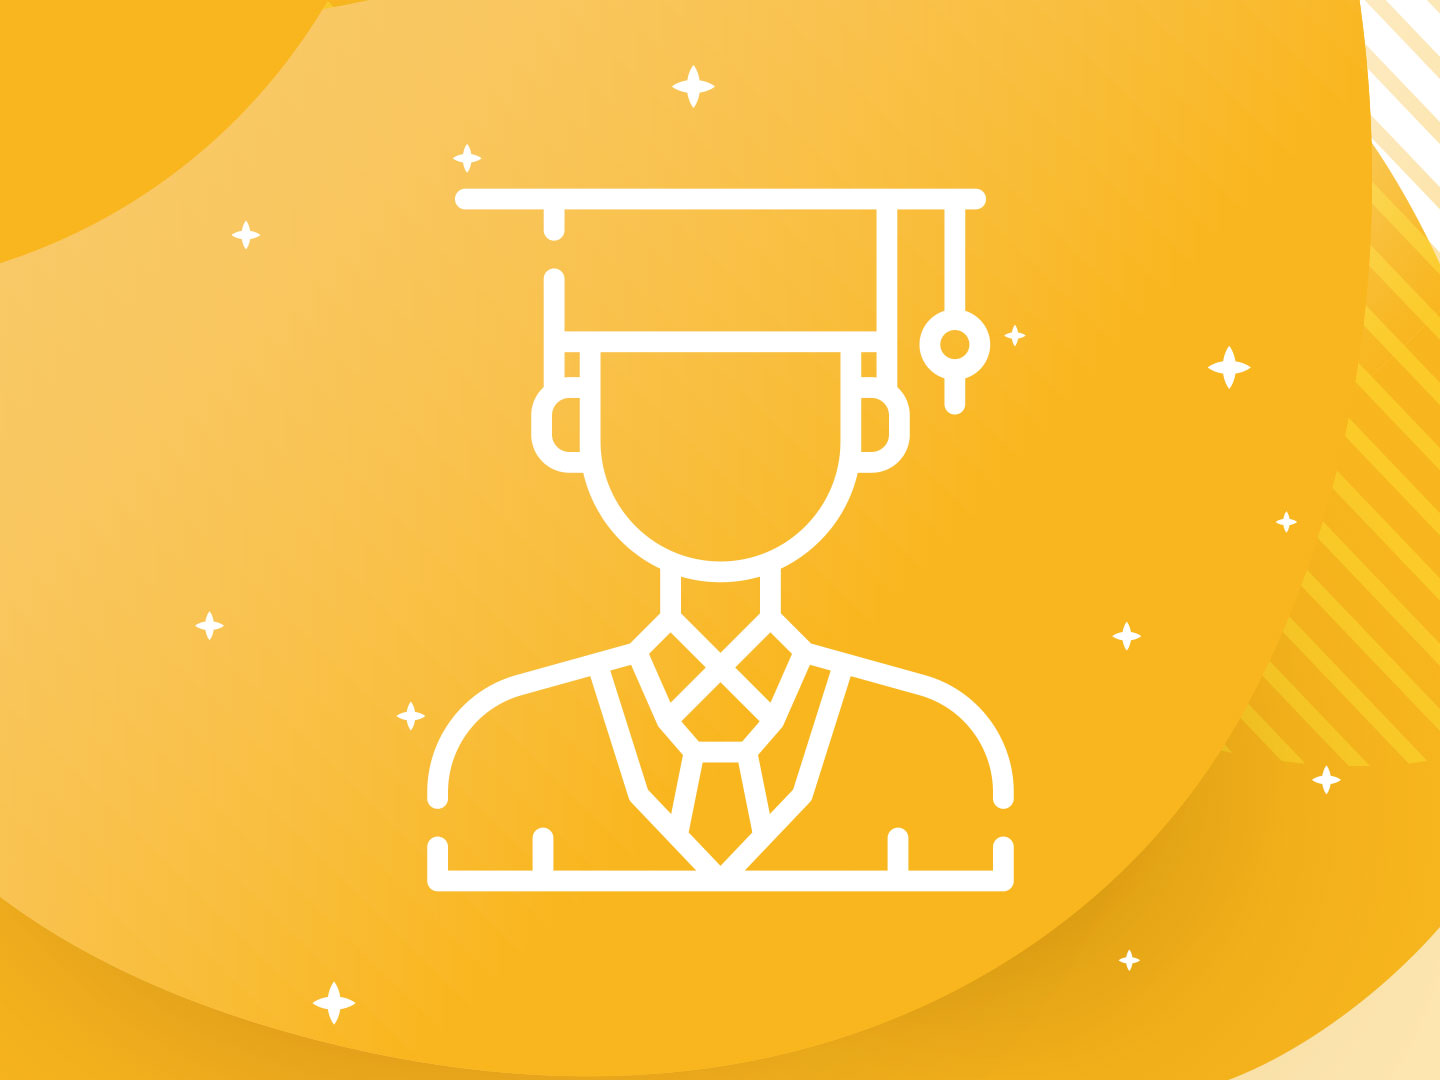 Student to career goal alignment